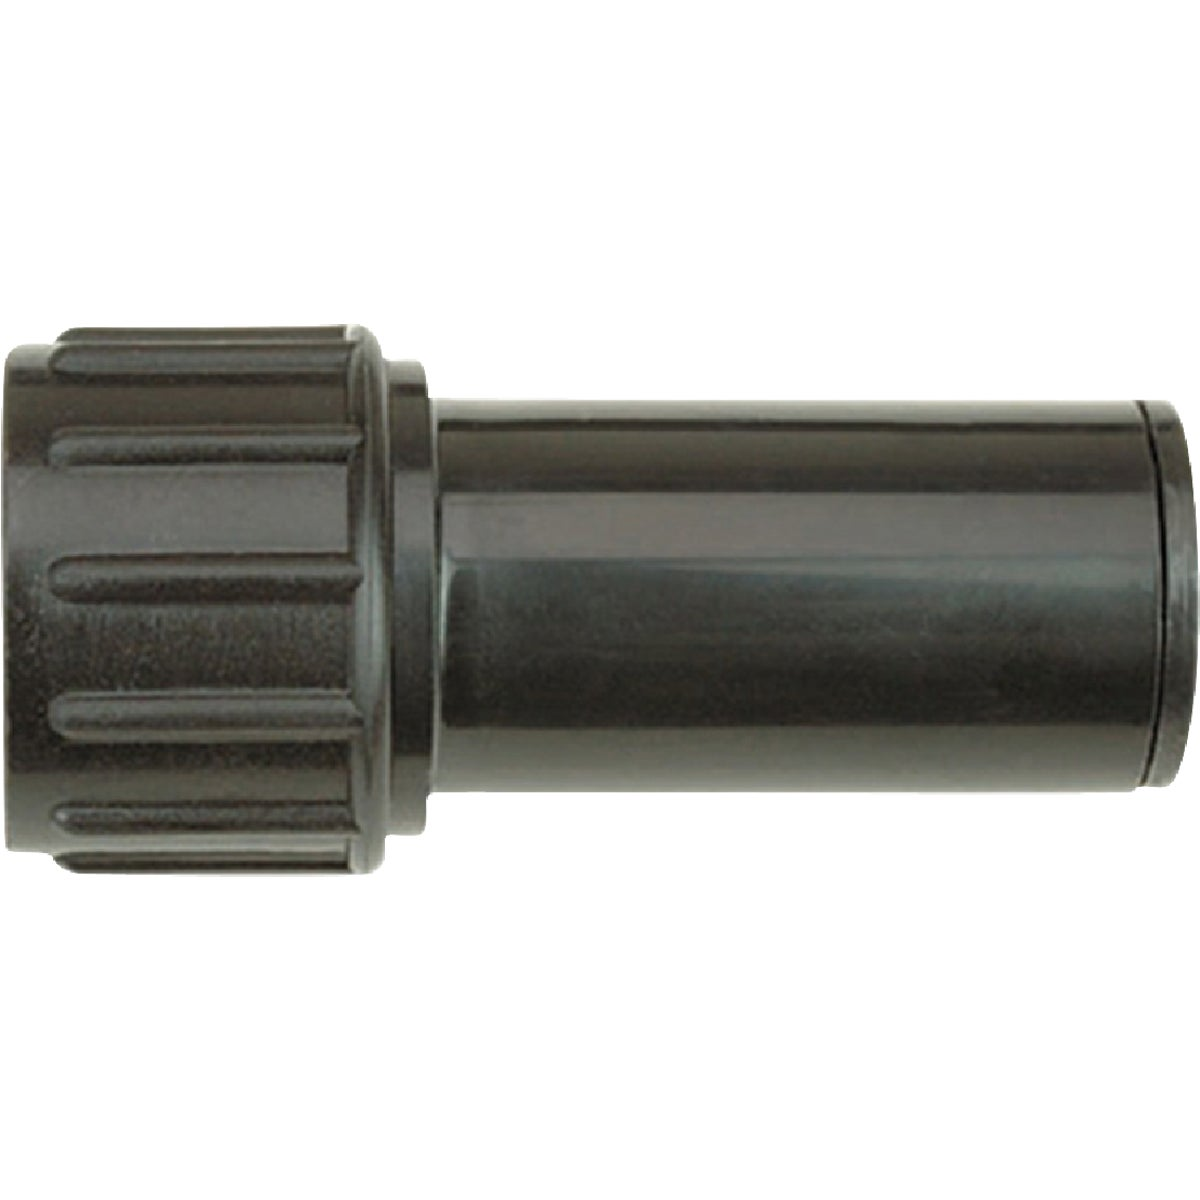 3/4X5/8 HOSE ADPT SWIVEL - R327CT by Raindrip Inc